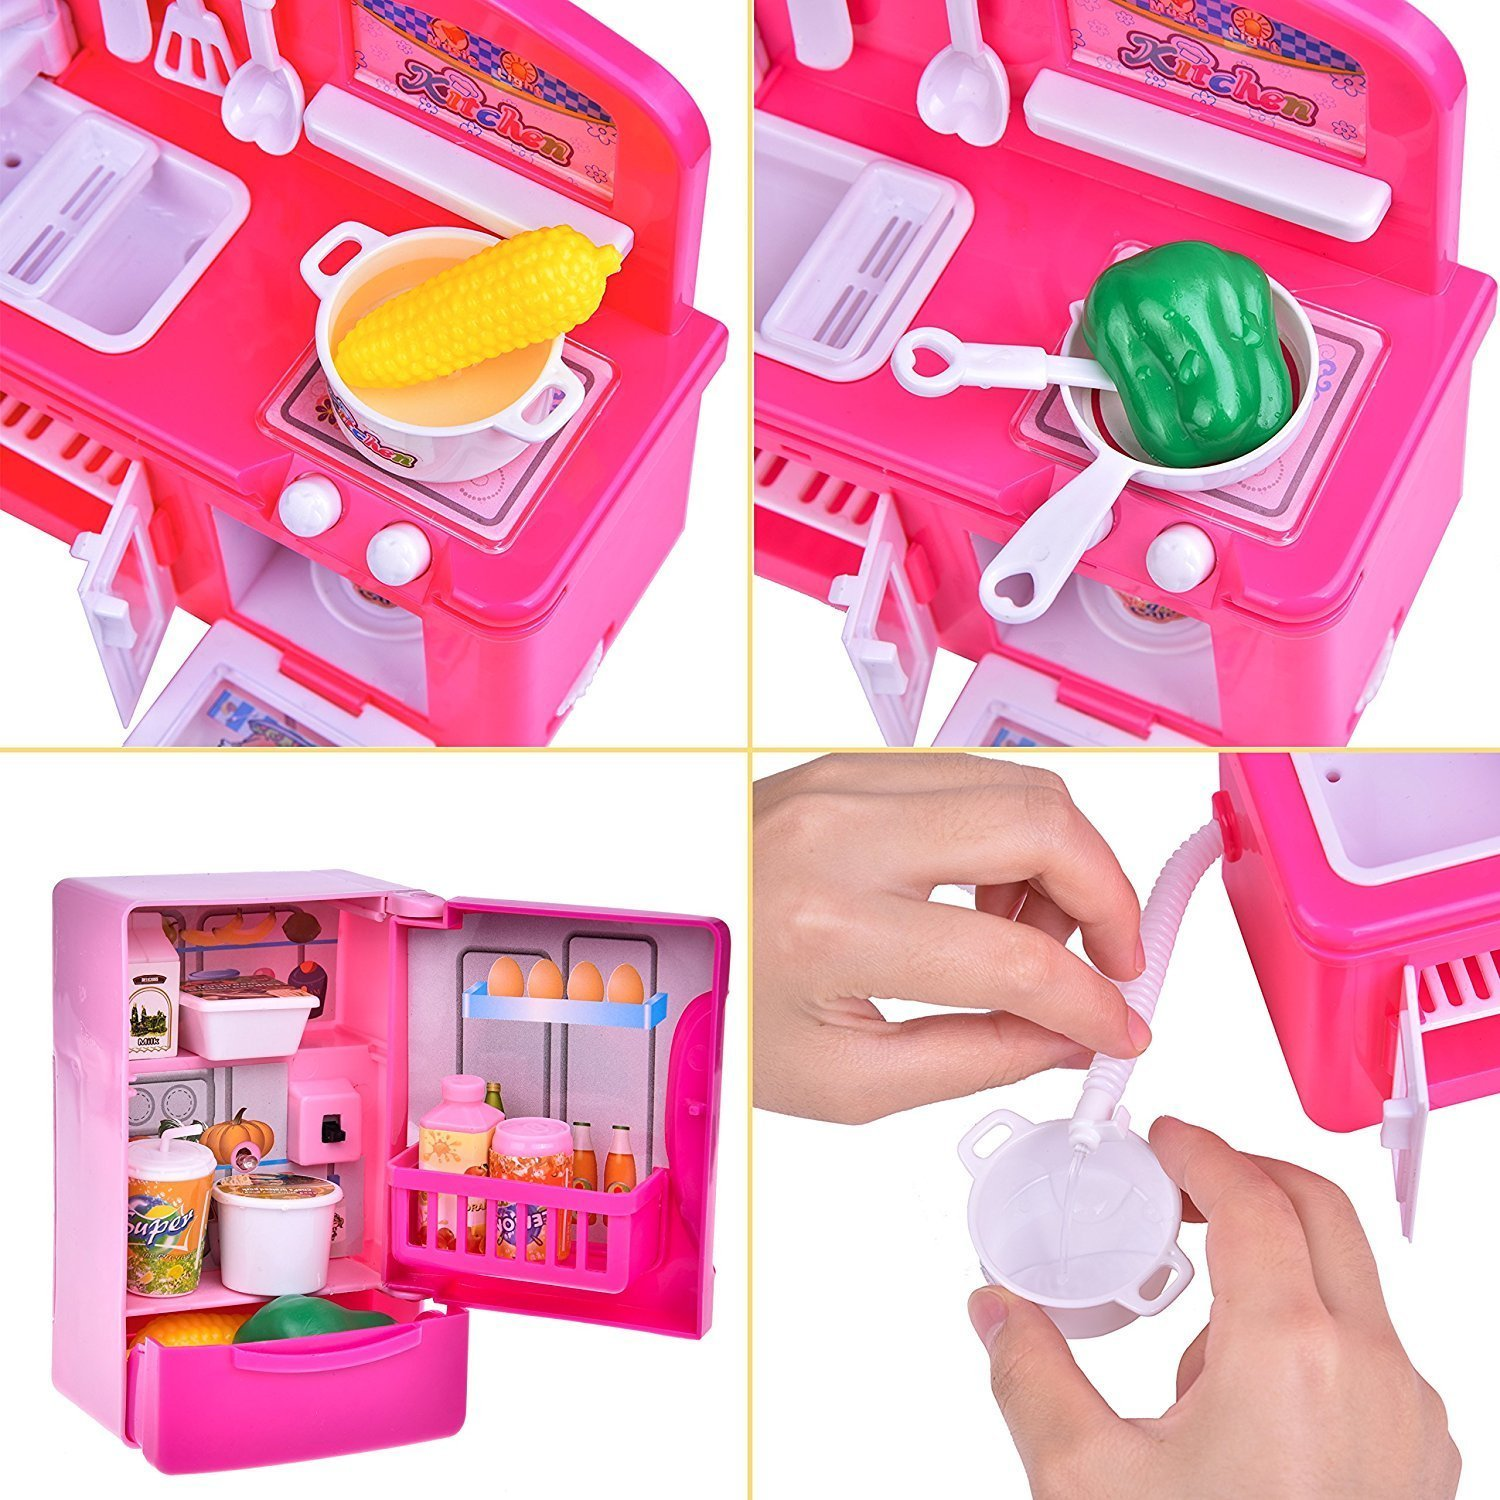 19 PCs Kitchen Appliance Toys with Kitchen, Refrigerator, Pot and Tableware, Pretend Play Set for Kids, Play Kitchen Appliance by FUN LITTLE TOYS (Image #5)